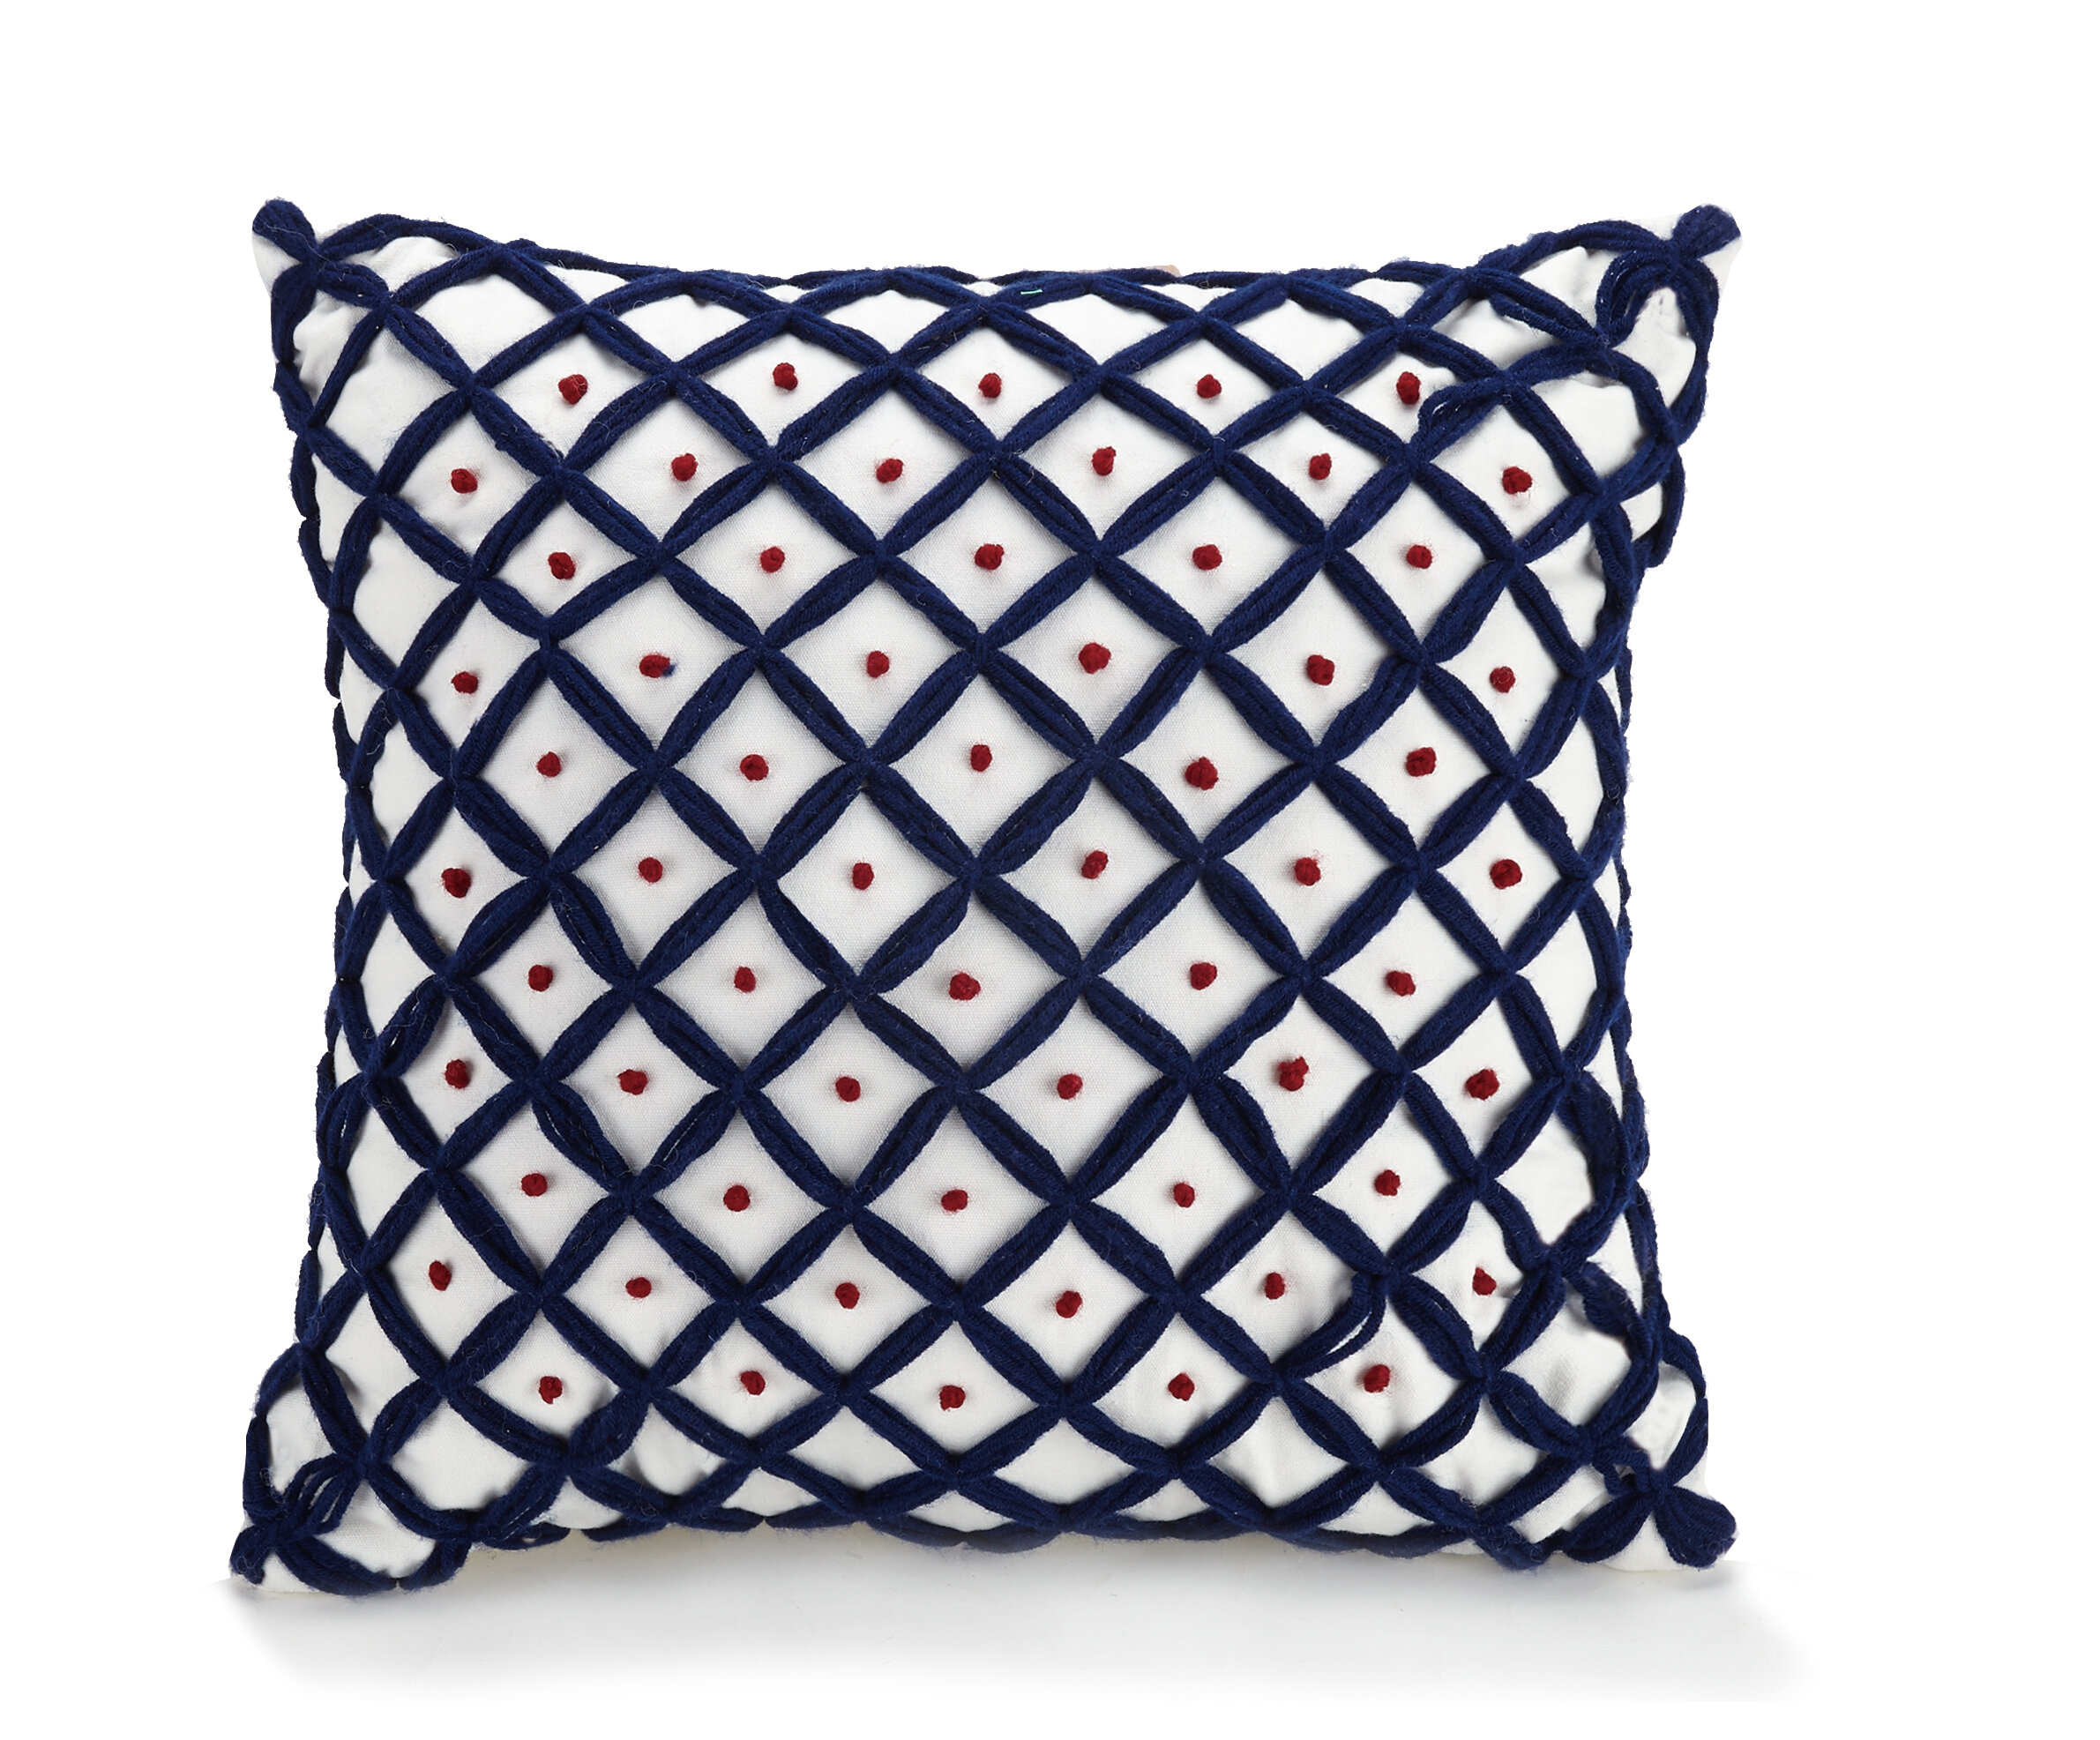 Jessica Simpson Home Verbena French Knot Cotton Throw Pillow Wayfair